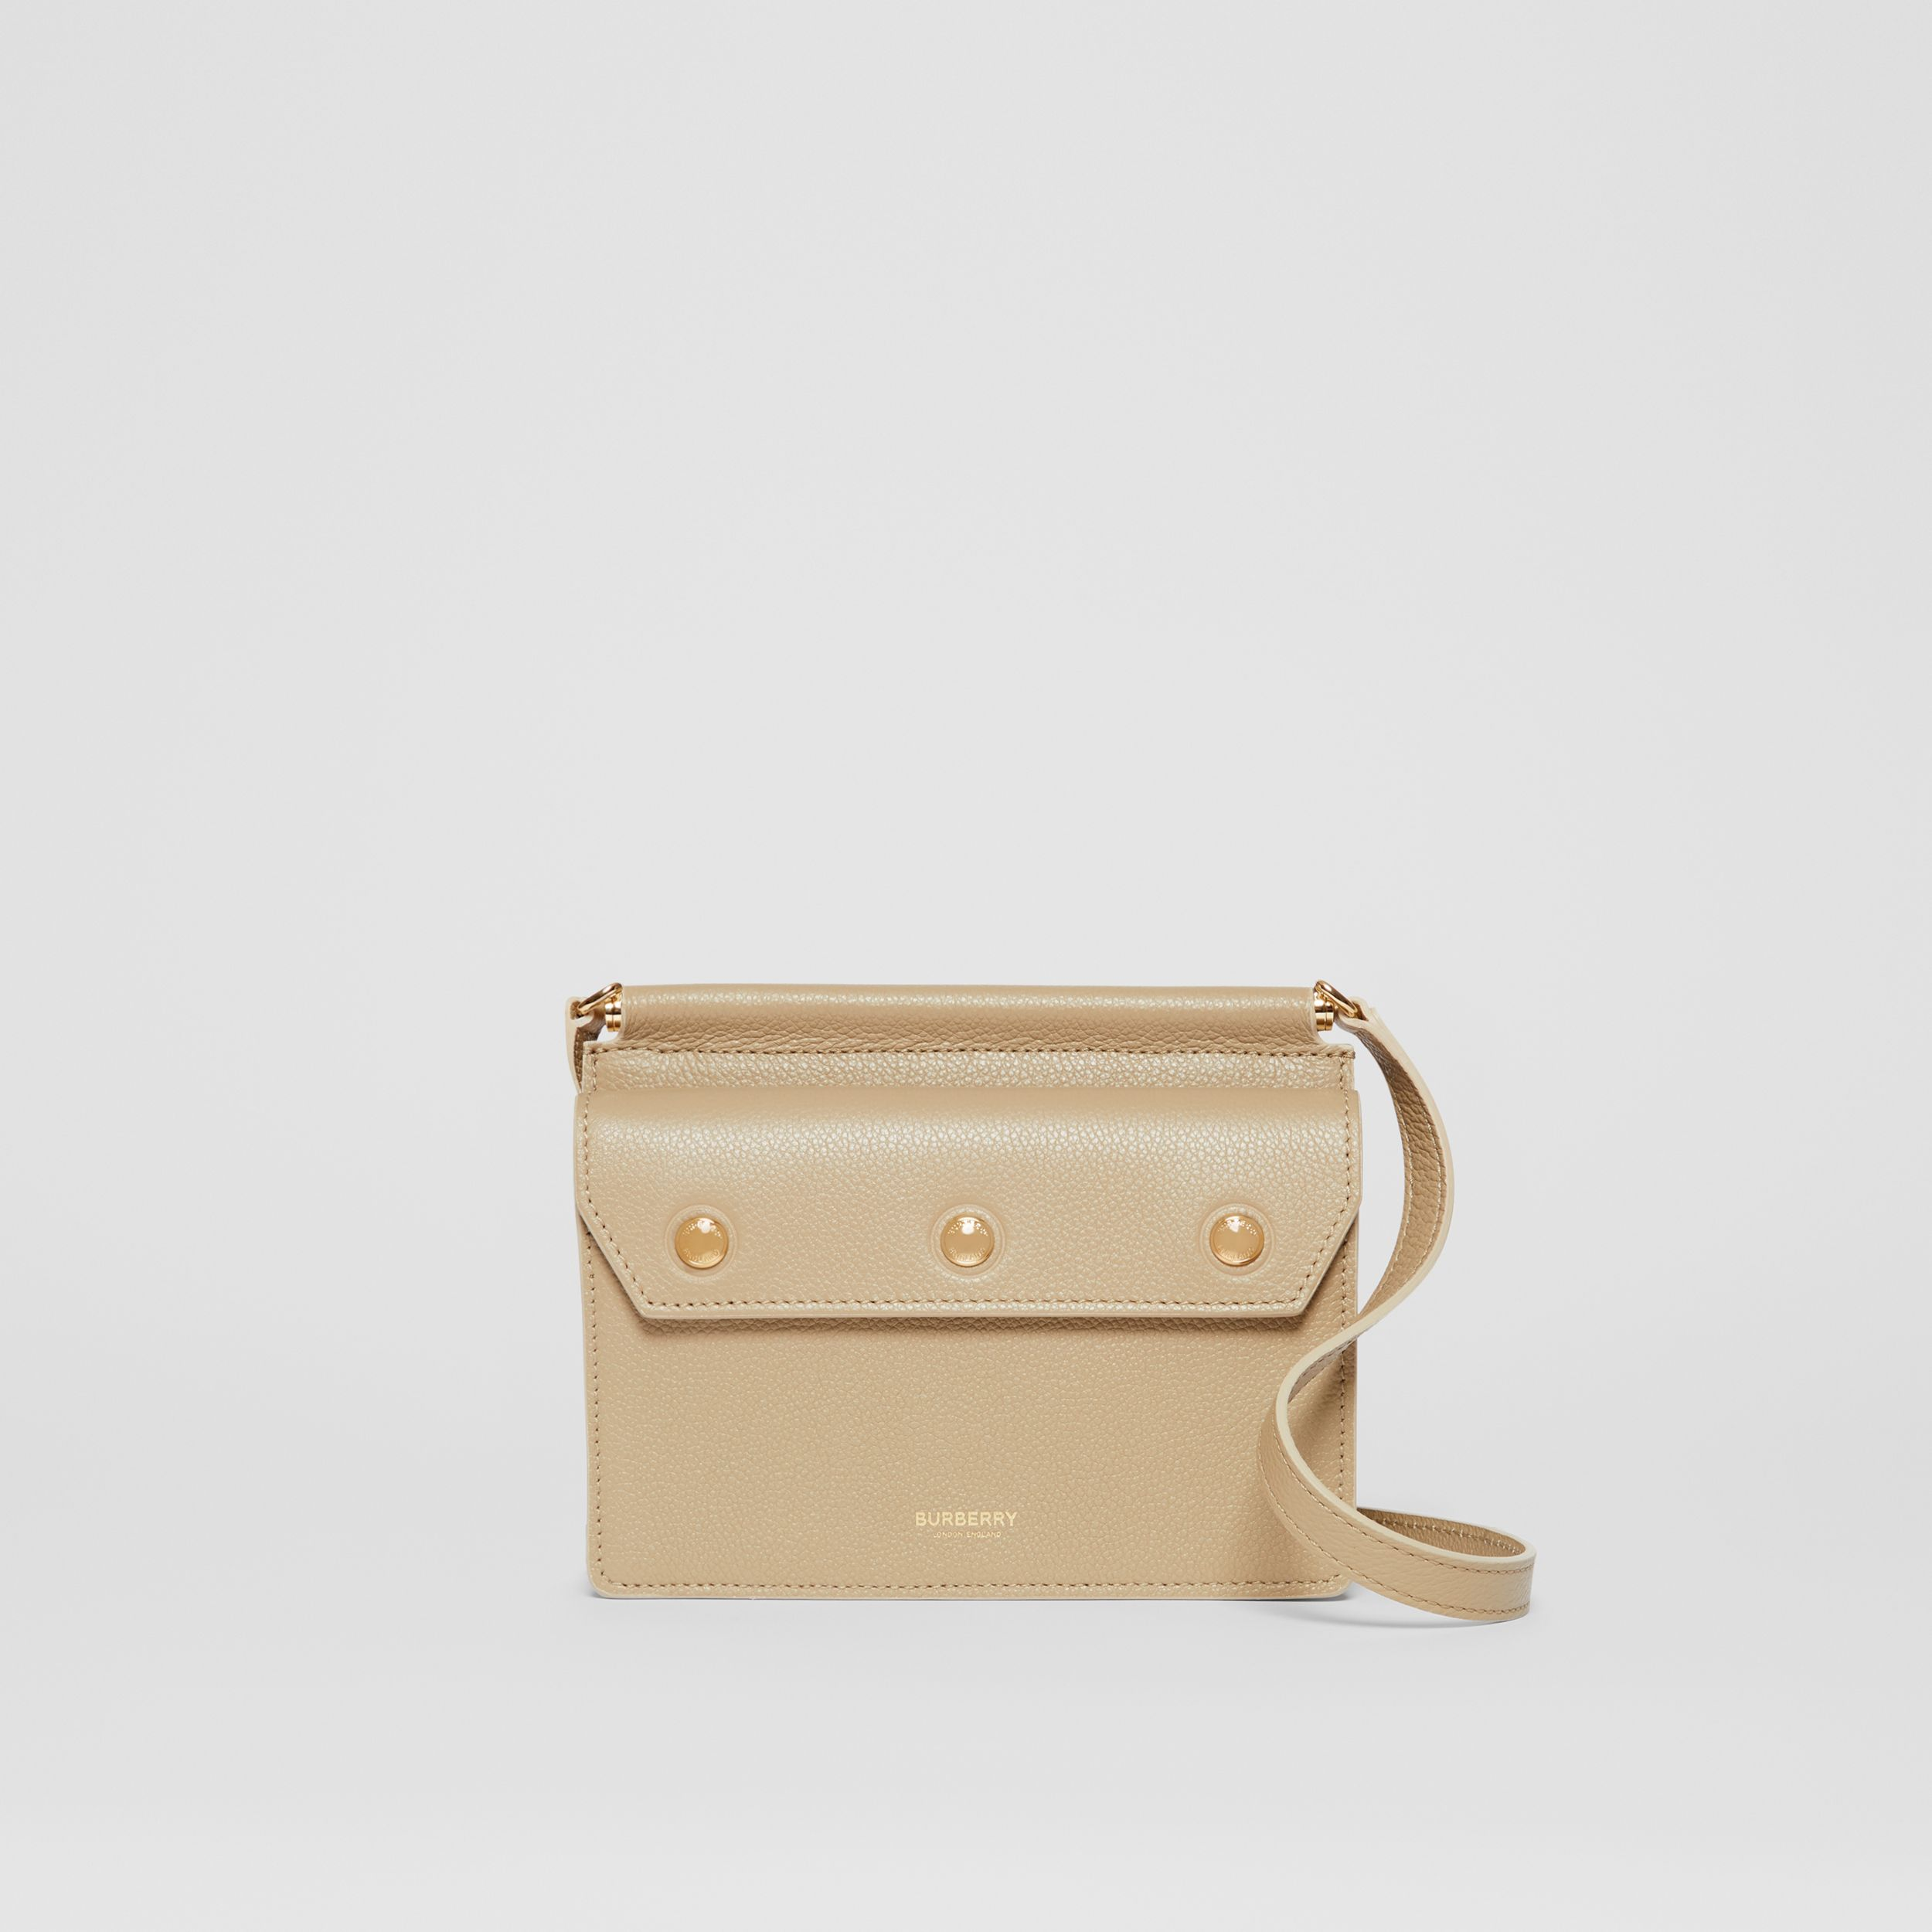 Mini Leather Title Bag with Pocket Detail in Honey - Women | Burberry Singapore - 1